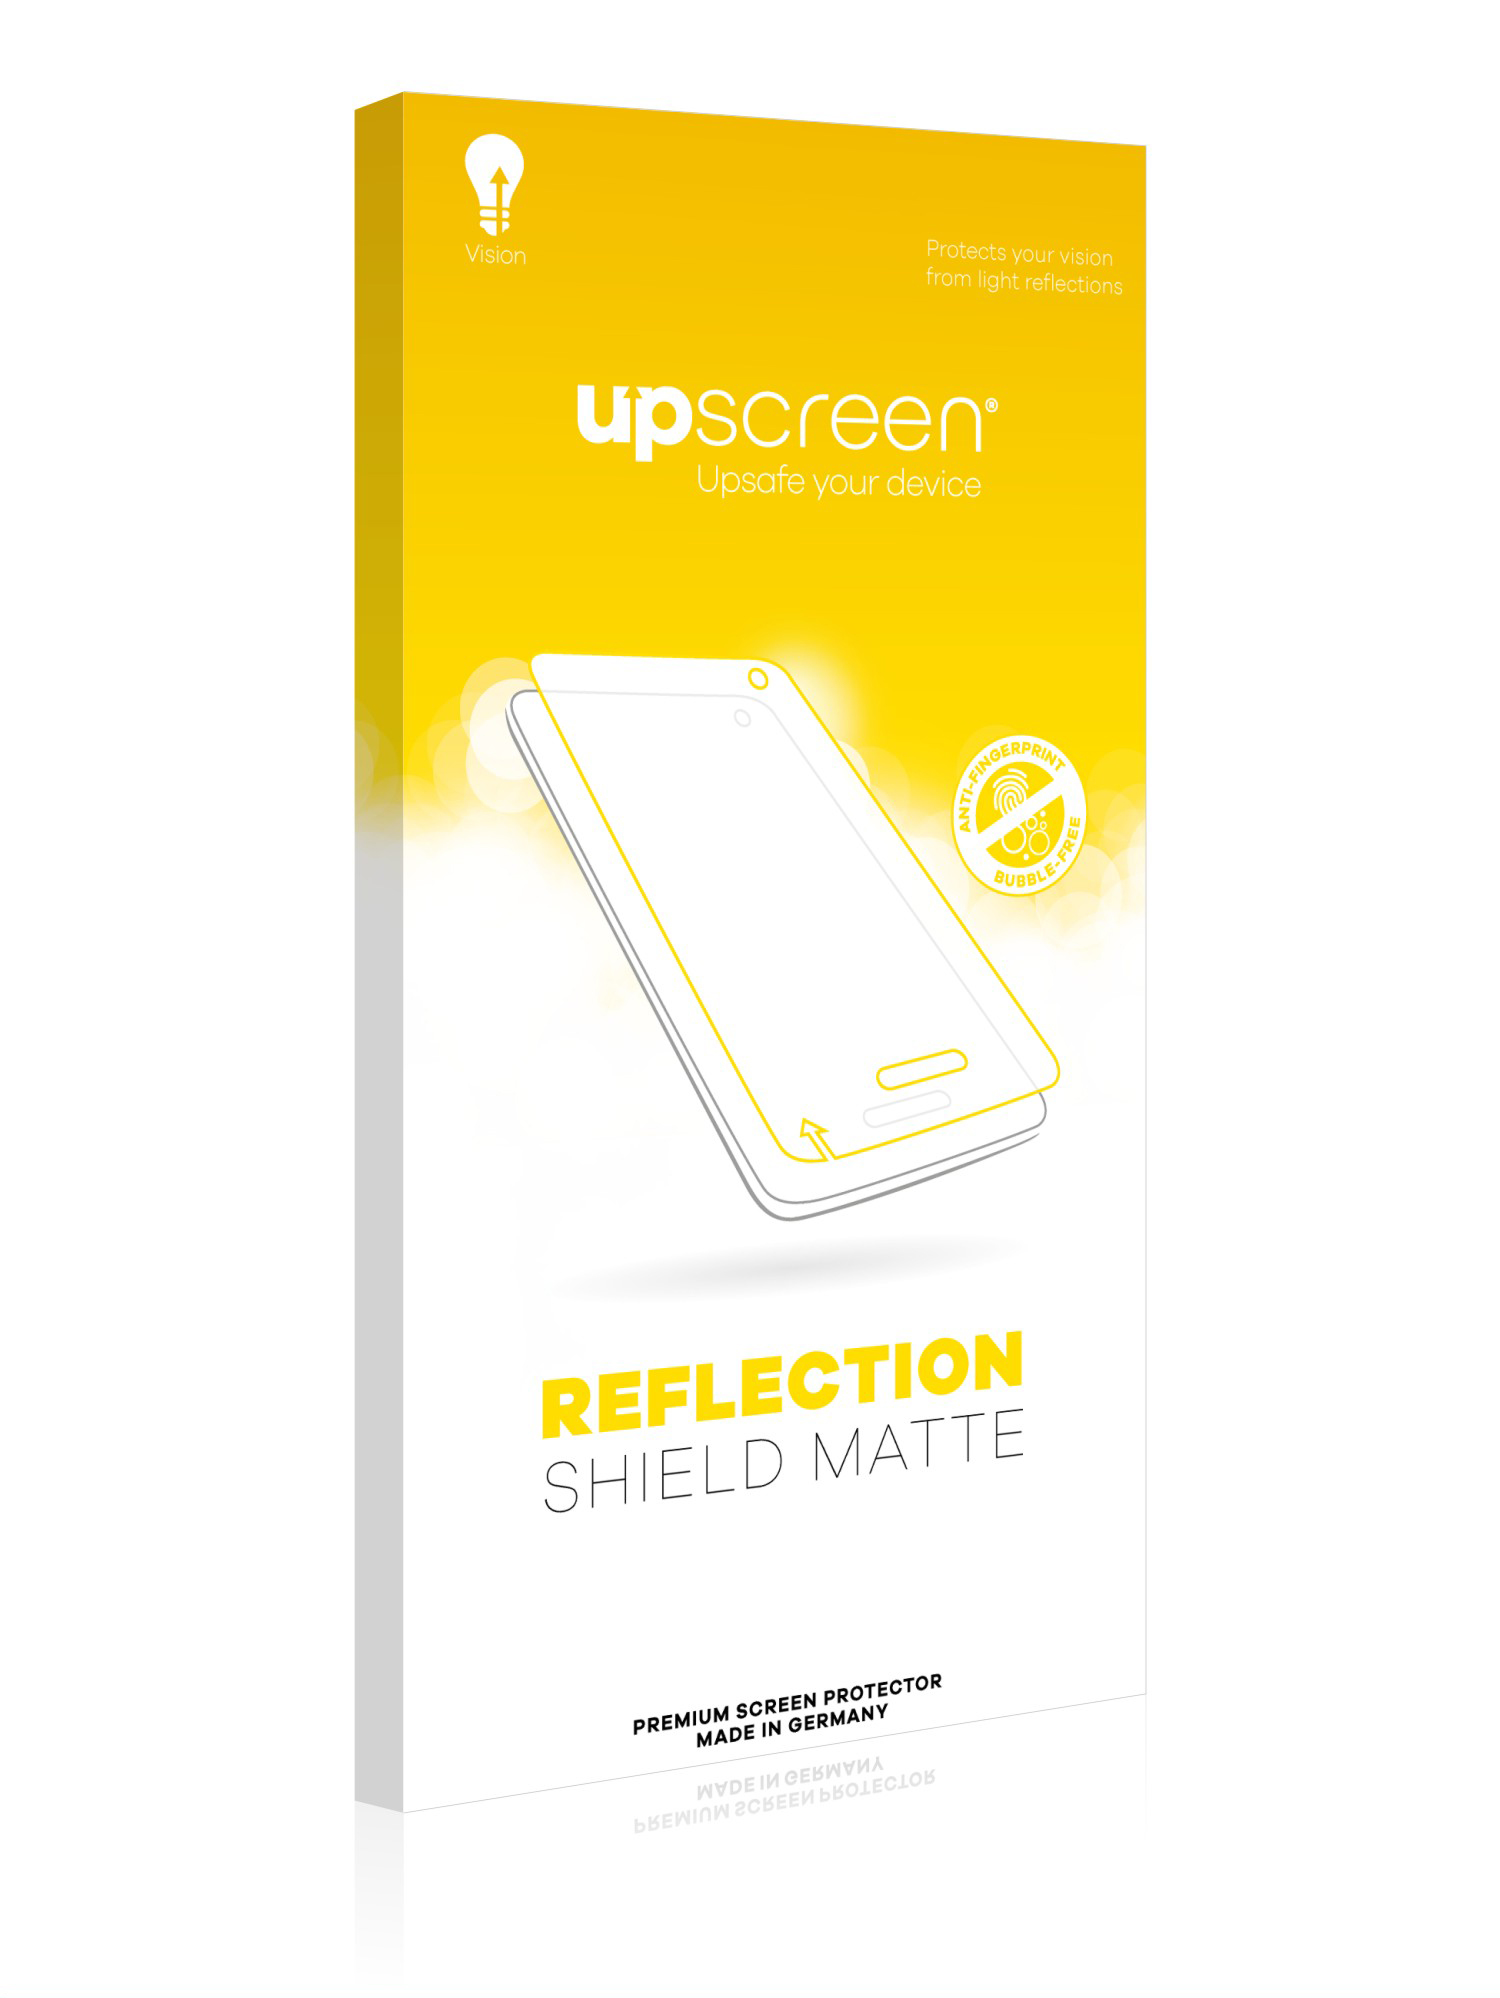 Multitouch Optimized upscreen Reflection Shield Matte Screen Protector for Garmin dezl 780 LMT-D Strong Scratch Protection Matte and Anti-Glare